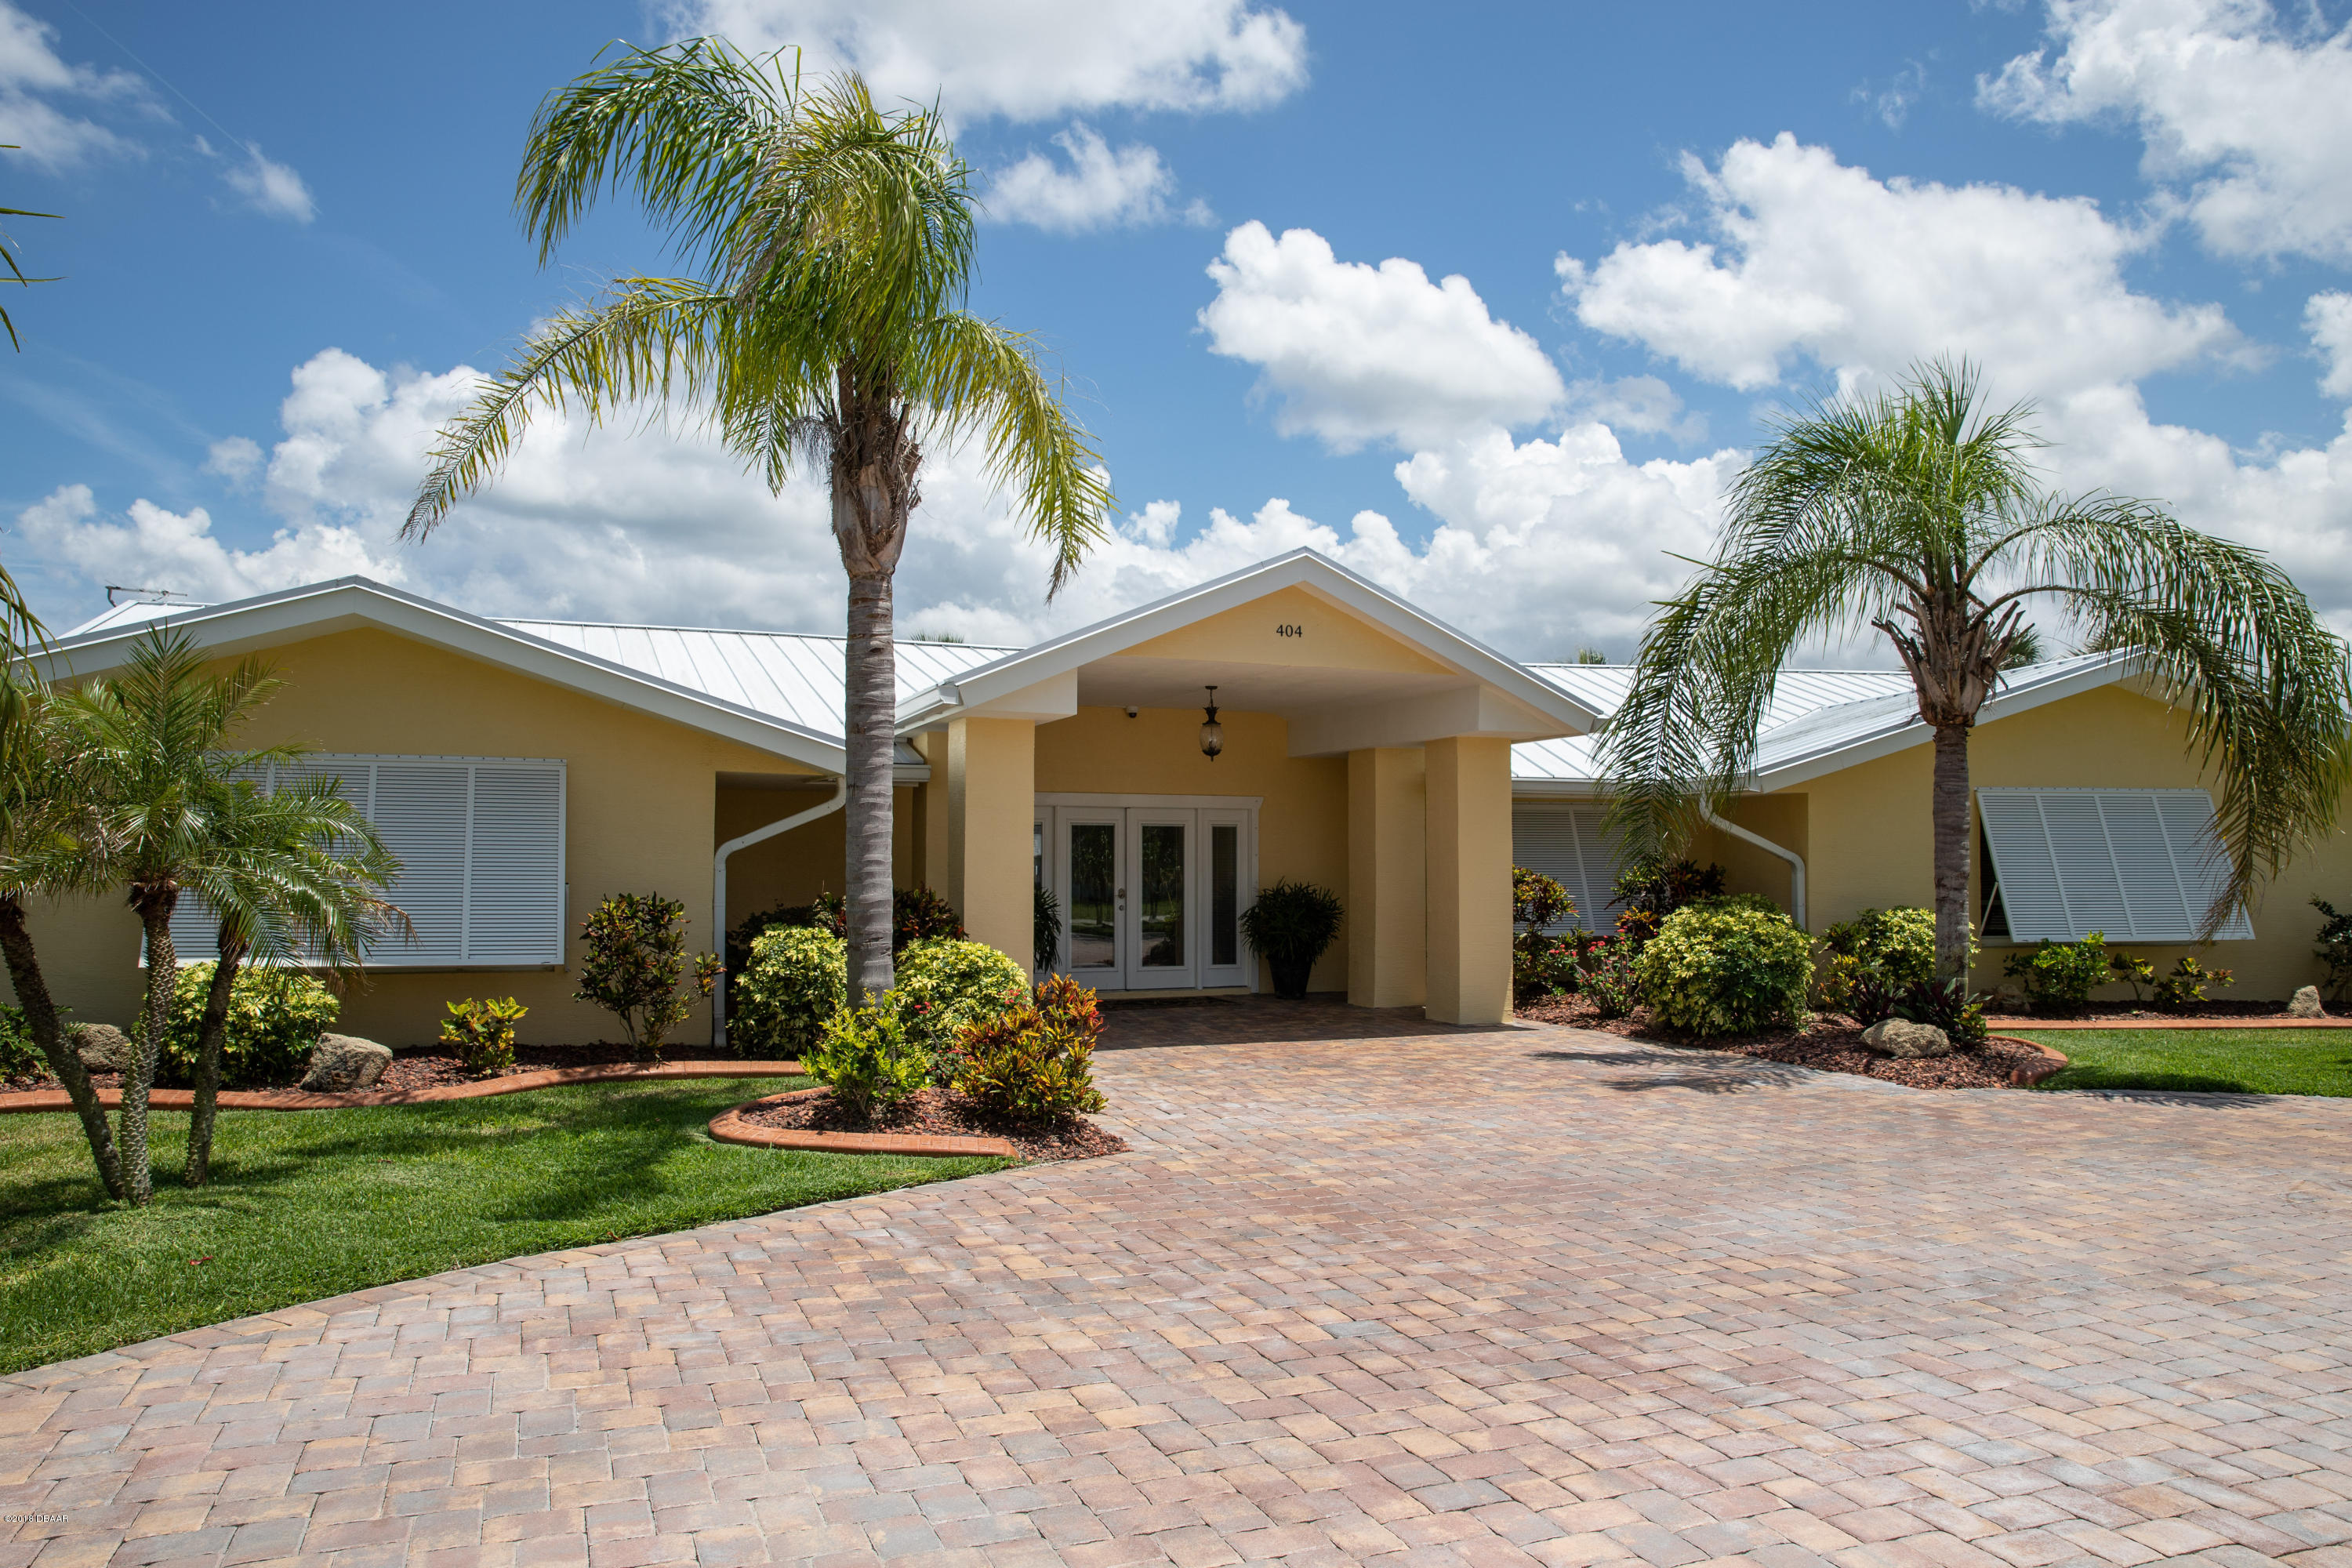 Photo of 404 Desoto Drive, New Smyrna Beach, FL 32169